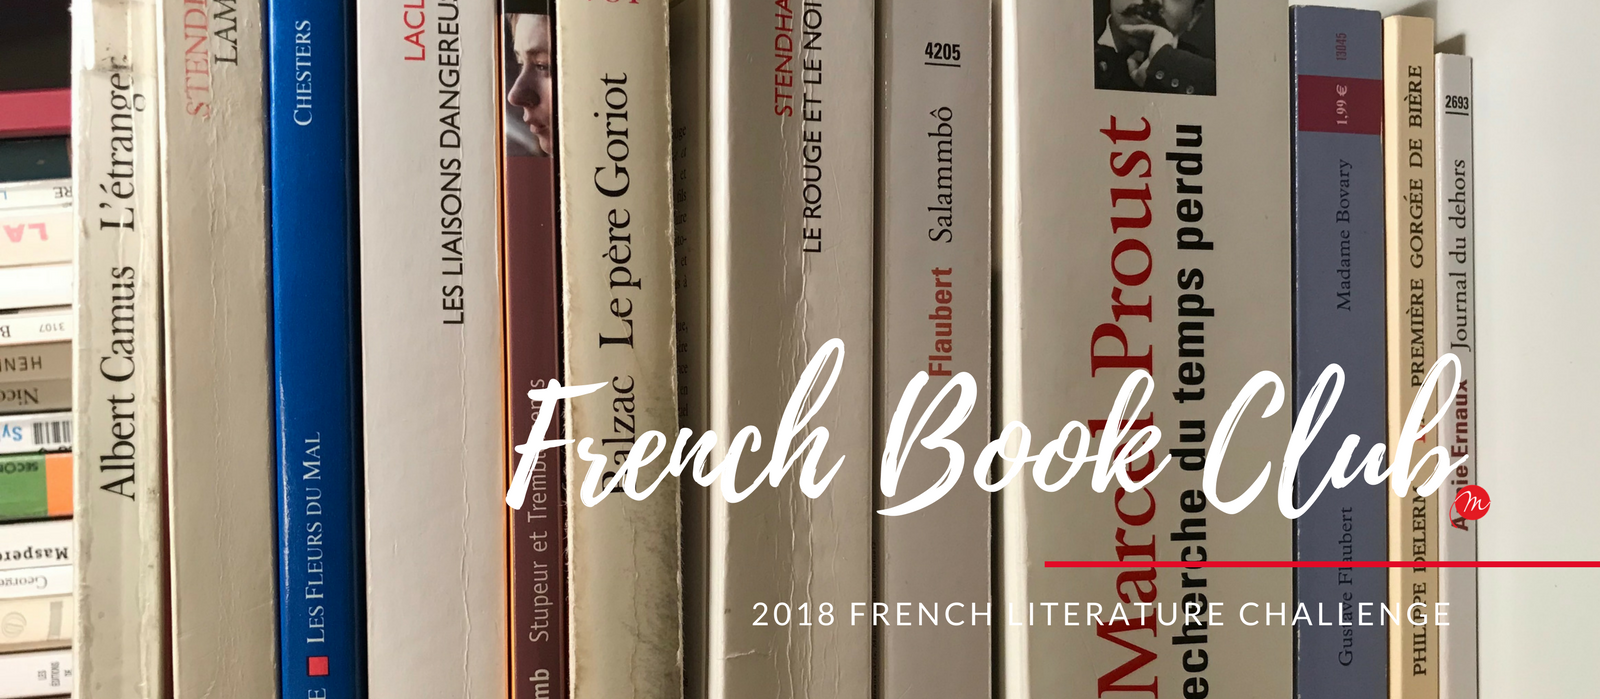 MyFrenchLife™ - MyFrenchLife.org - MyFrenchLife™ book club: French literature challenge 2018 – our top 12 reads